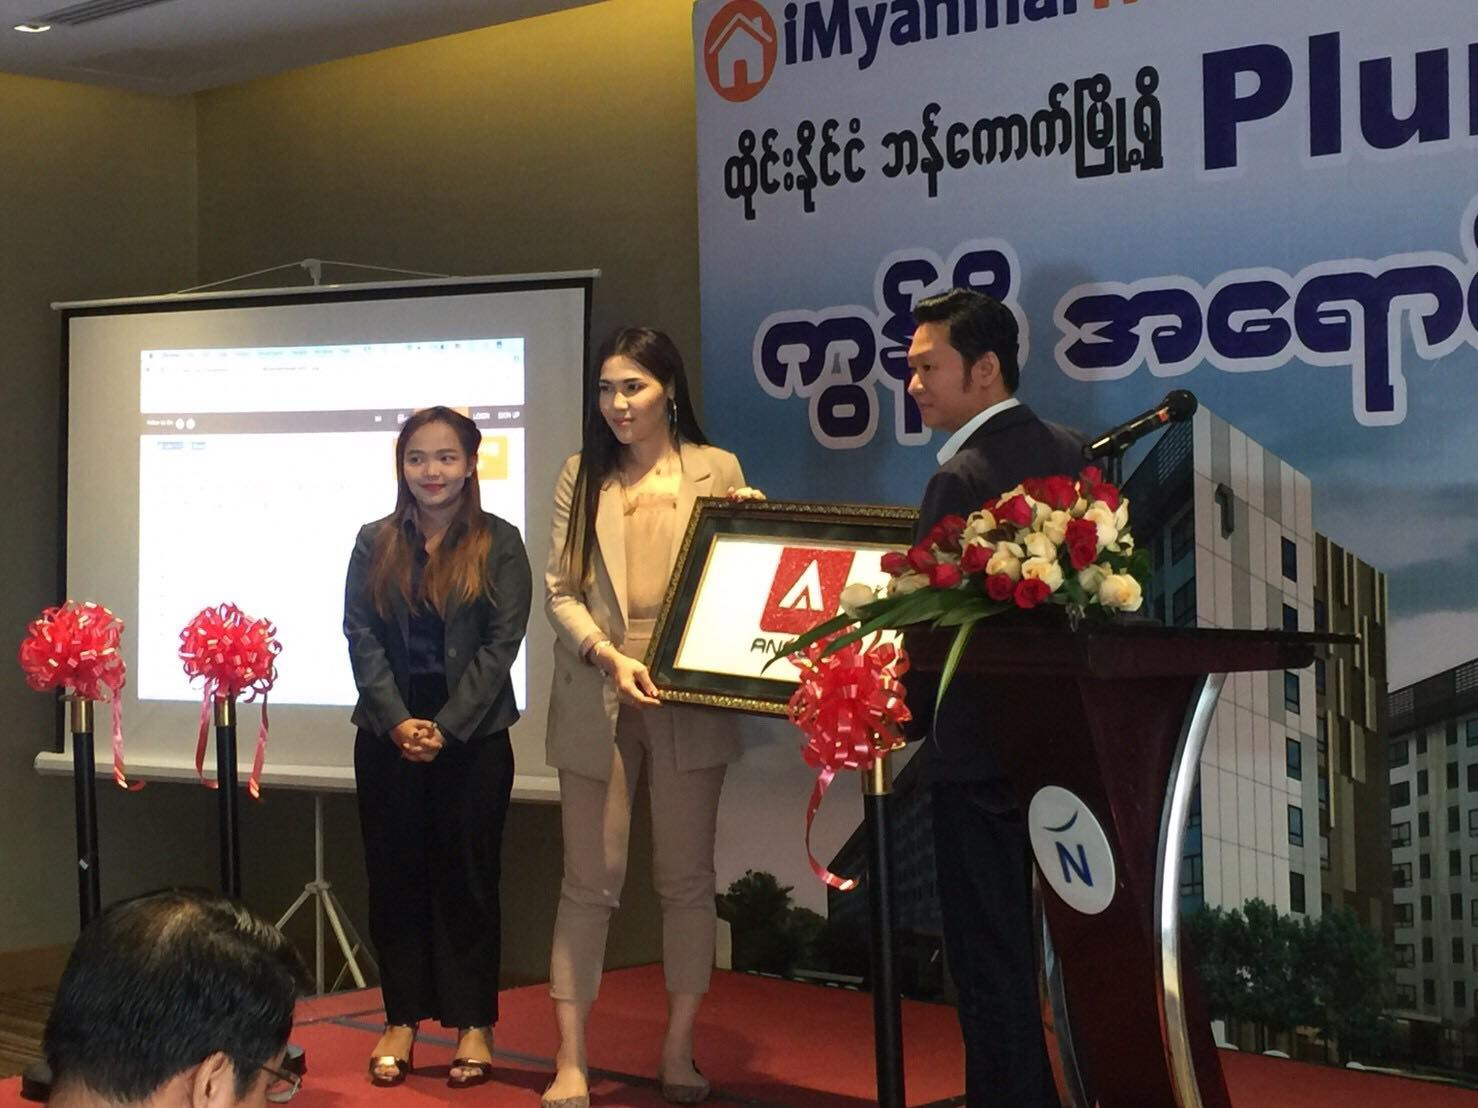 From the Launching Ceremony of Bangkok Based Plum Condo Phohol 89 in Myanmar